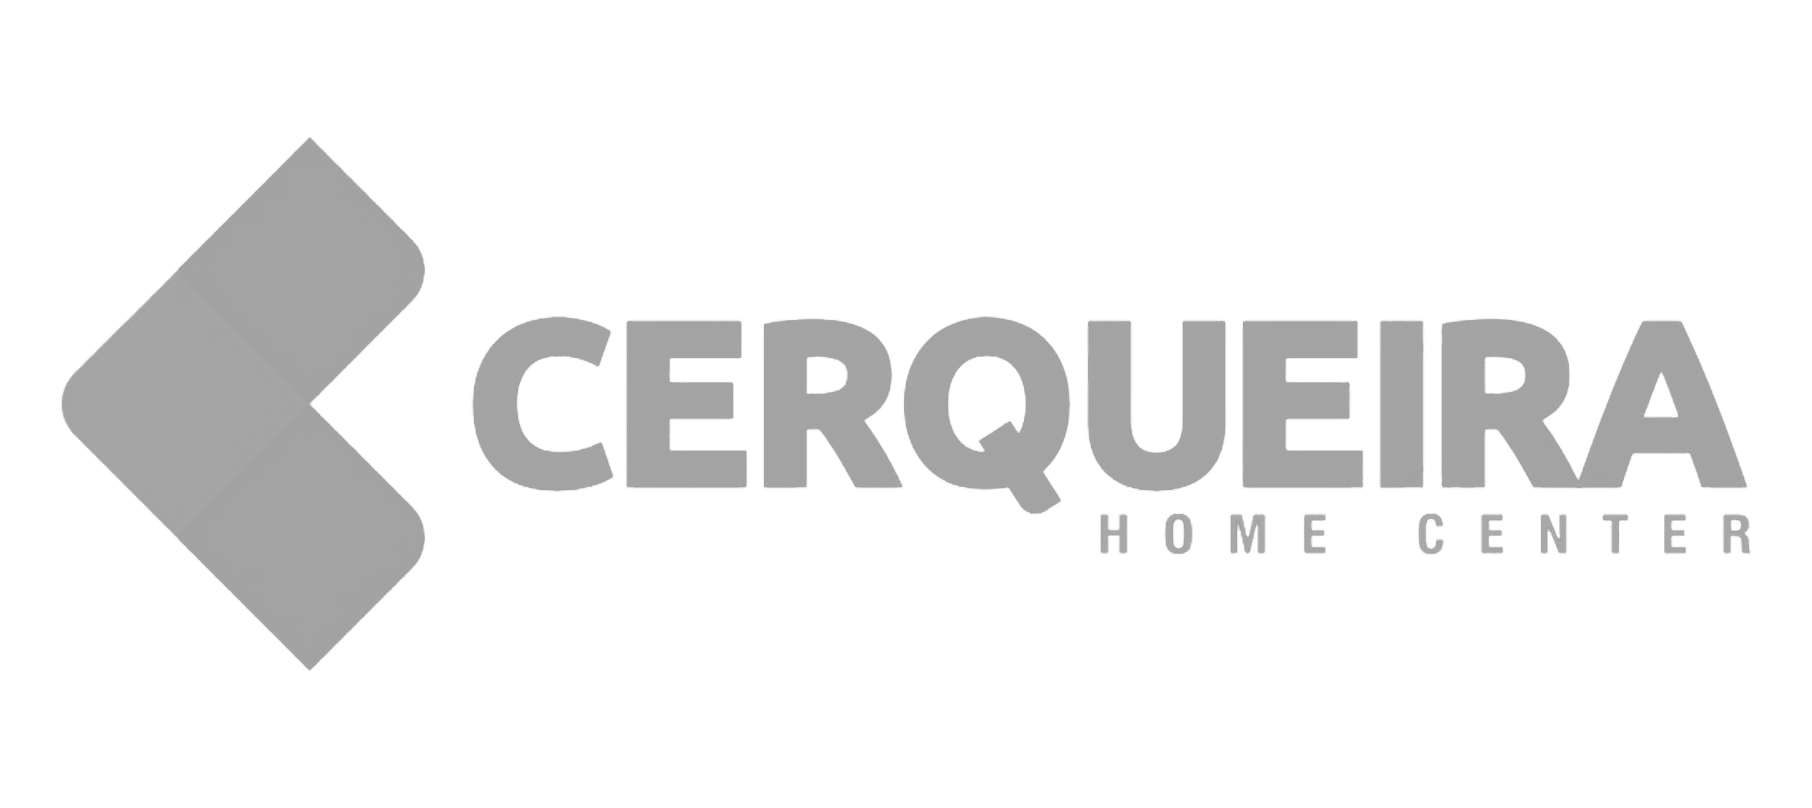 Cerqueira Home Center